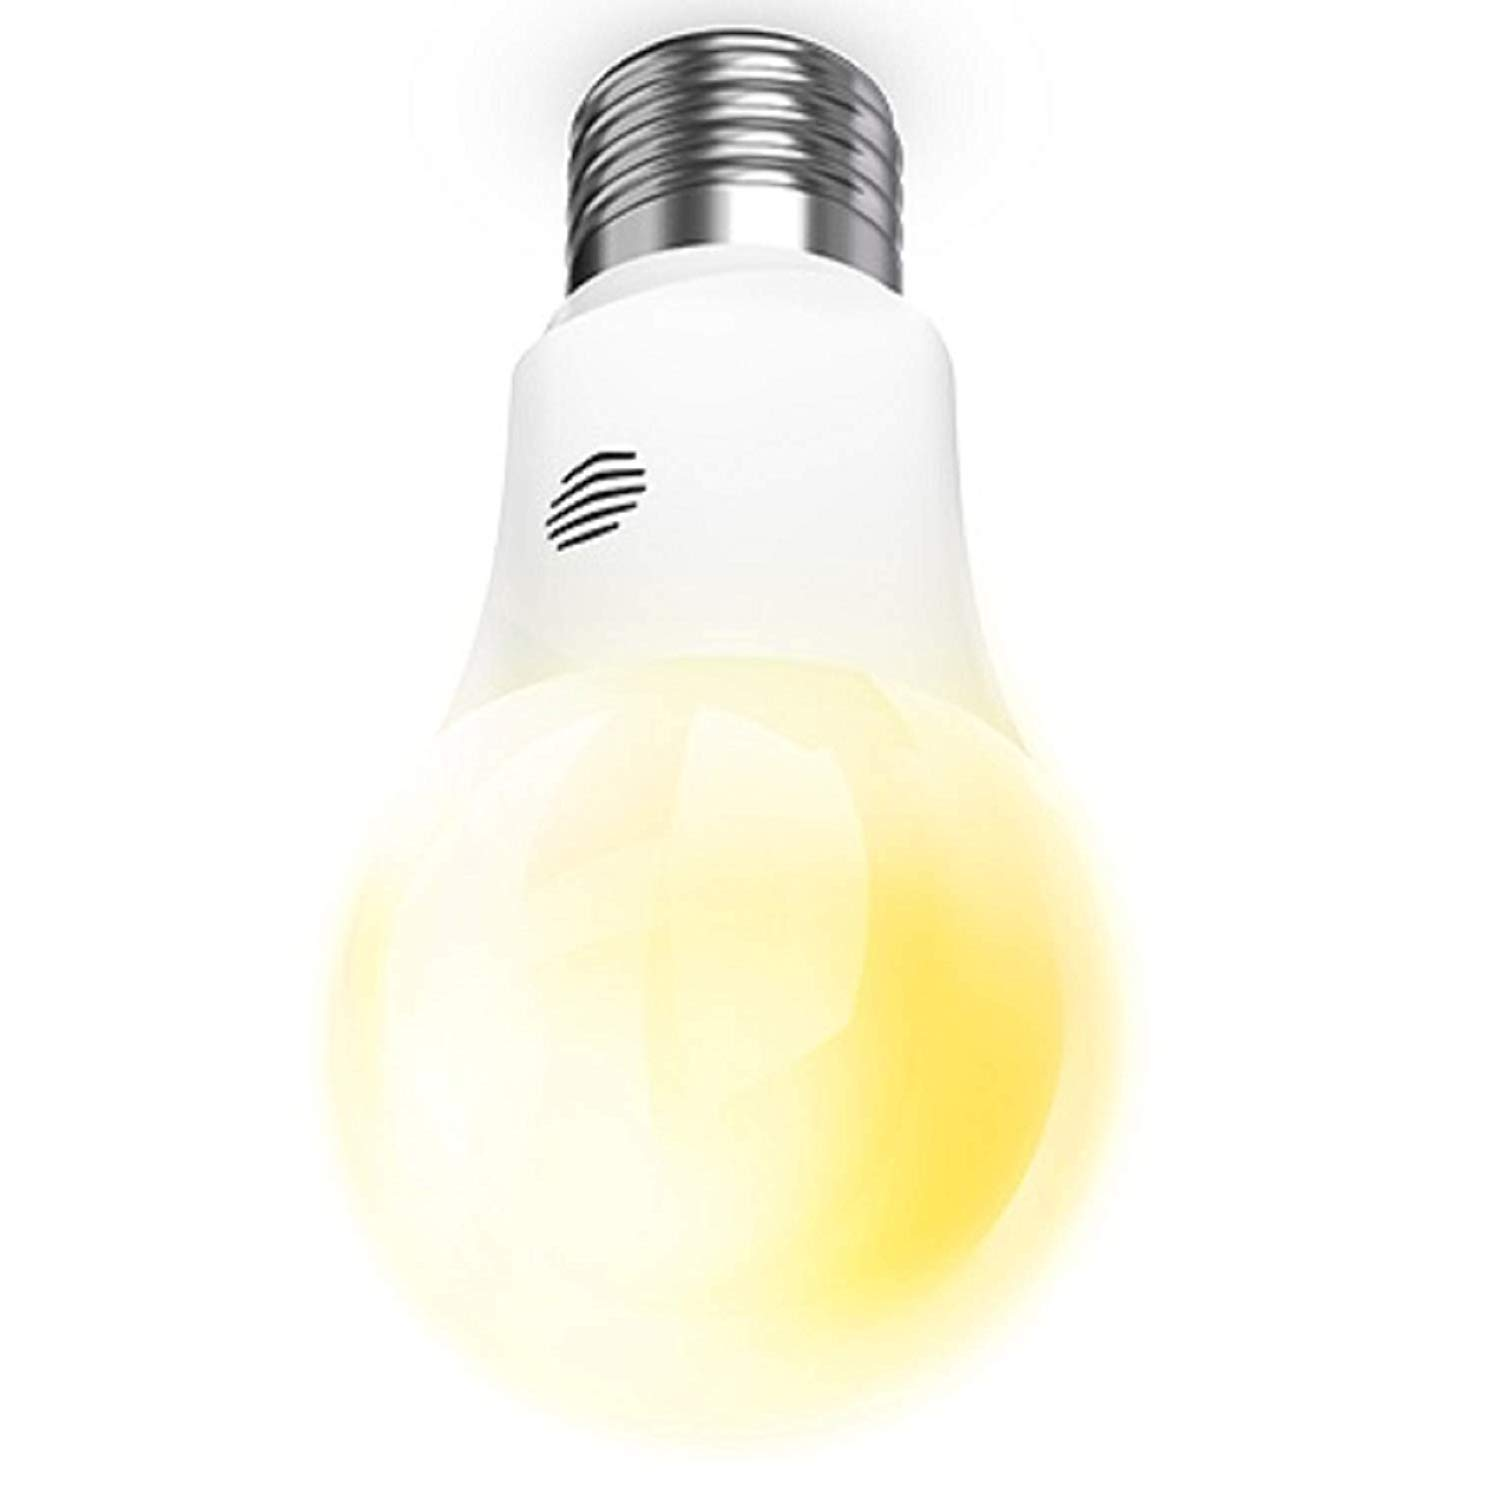 Hive LED Light Bulb for Smart Home, Dimmable, Works with Alexa & Google Home, Requires Hive Hub